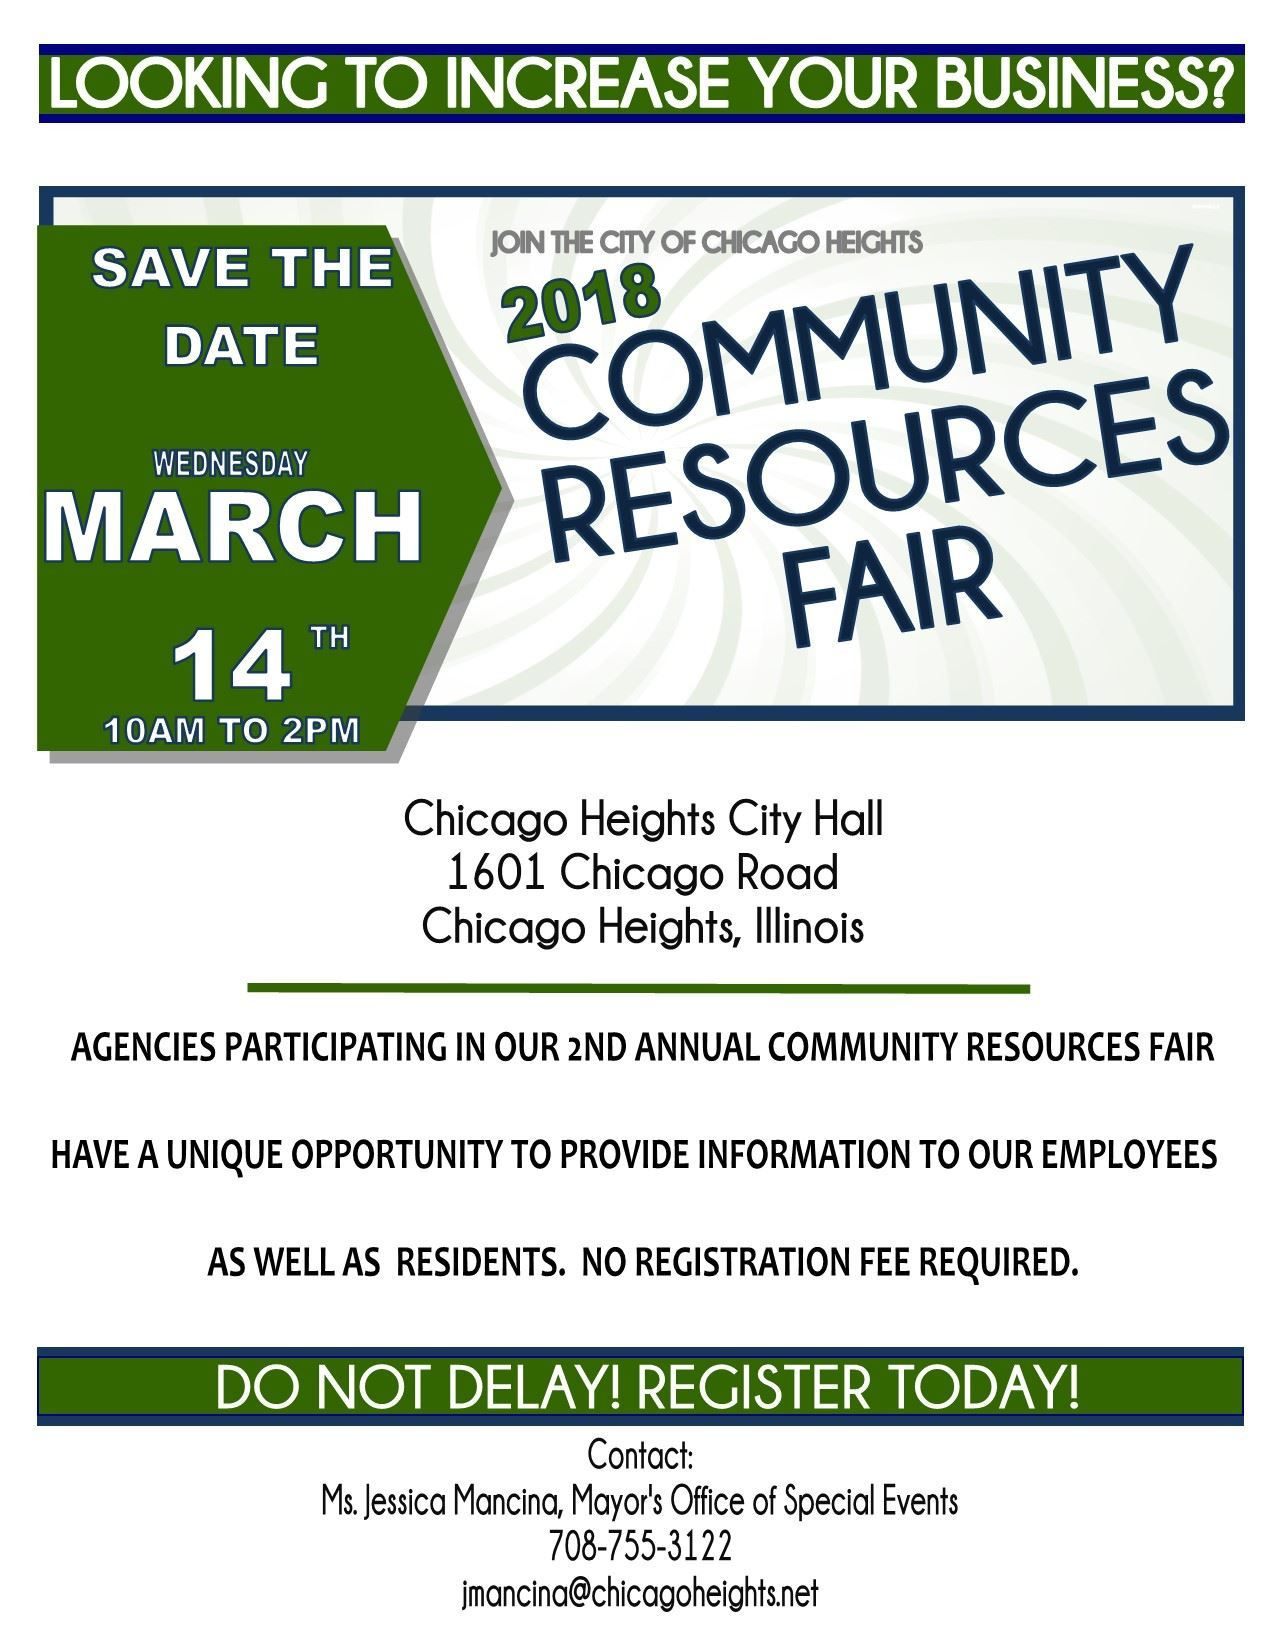 Resources Fair for agencies